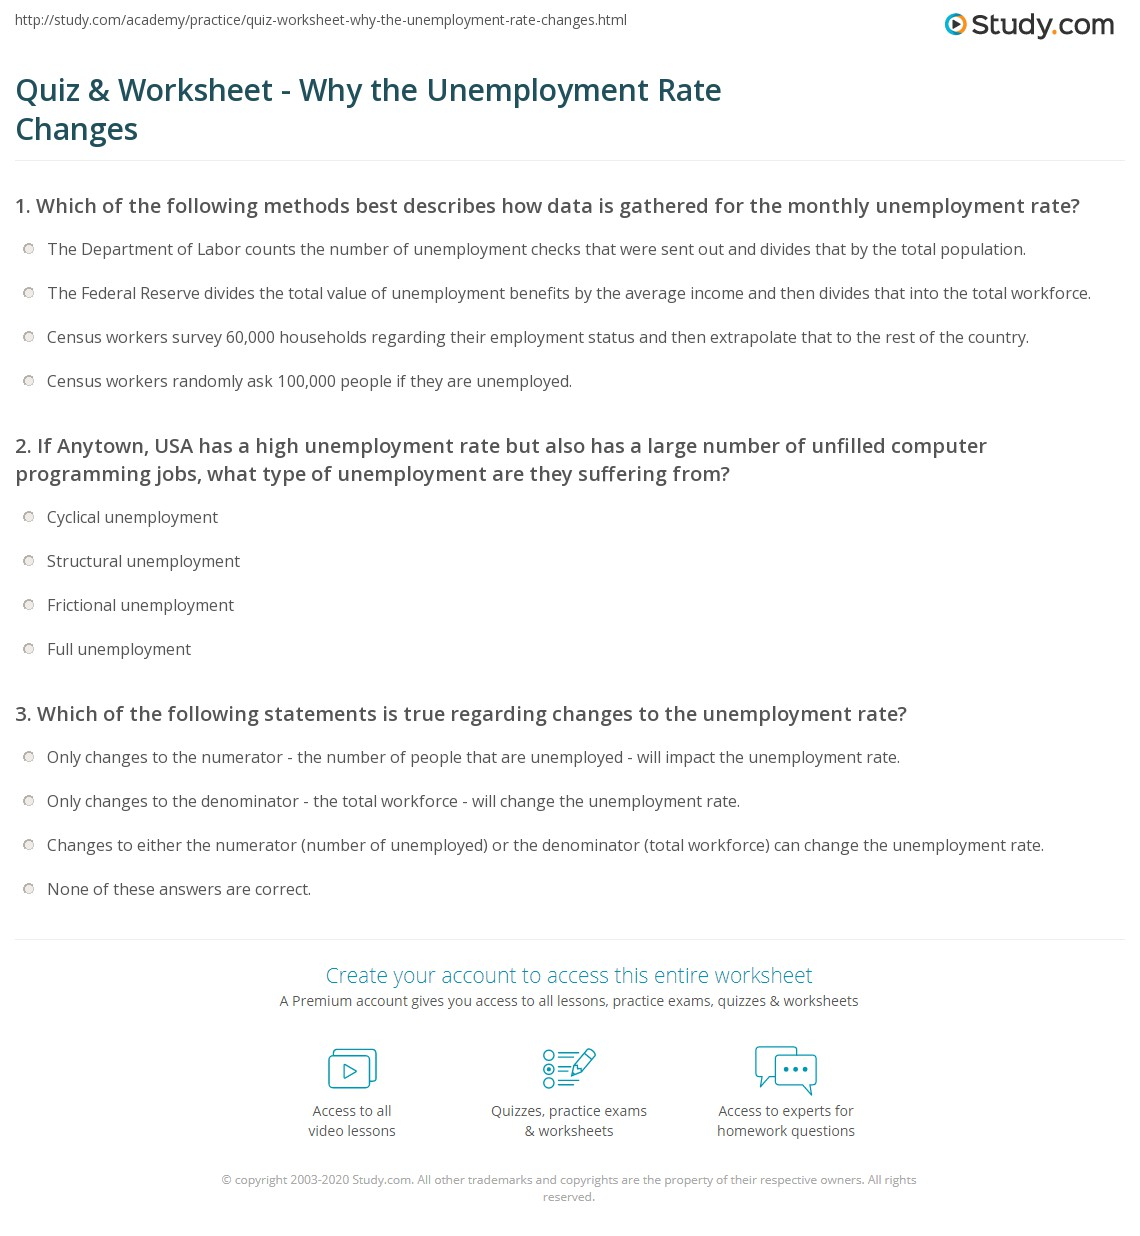 Quiz & Worksheet - Why the Unemployment Rate Changes | Study.com